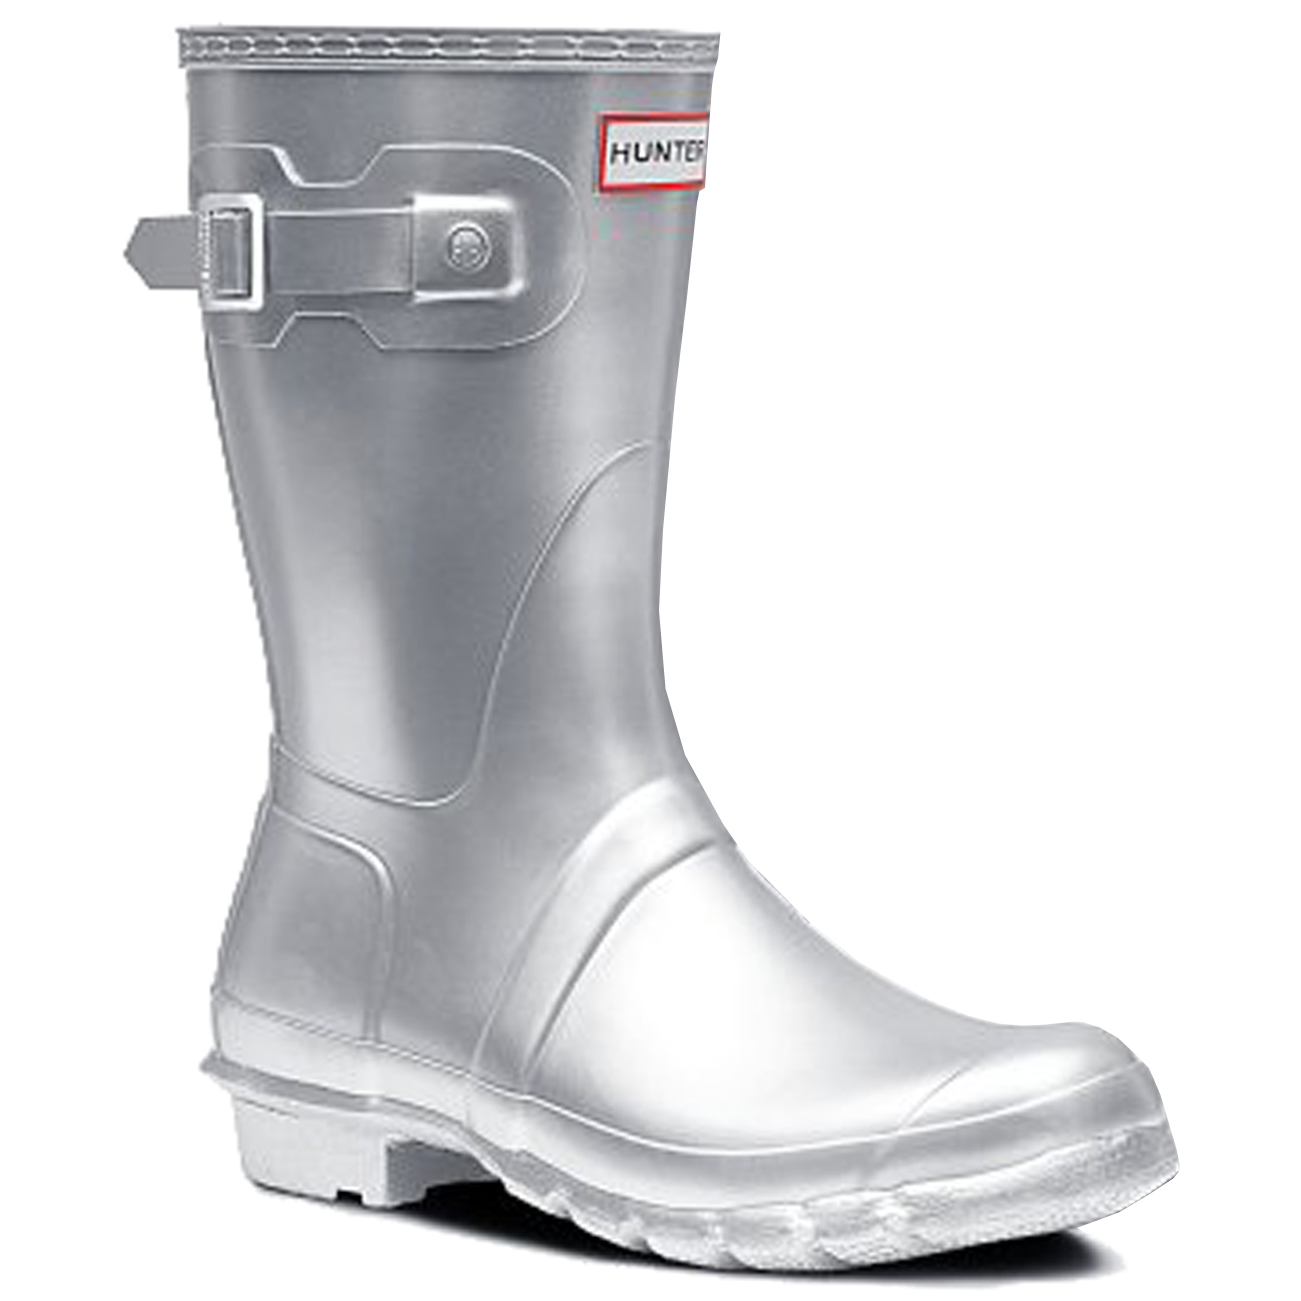 check out 5c533 6e625 Details zu Damen Hunter Original Short Schnee Regen Gummi Gummistiefel  Stiefel EU 36-43